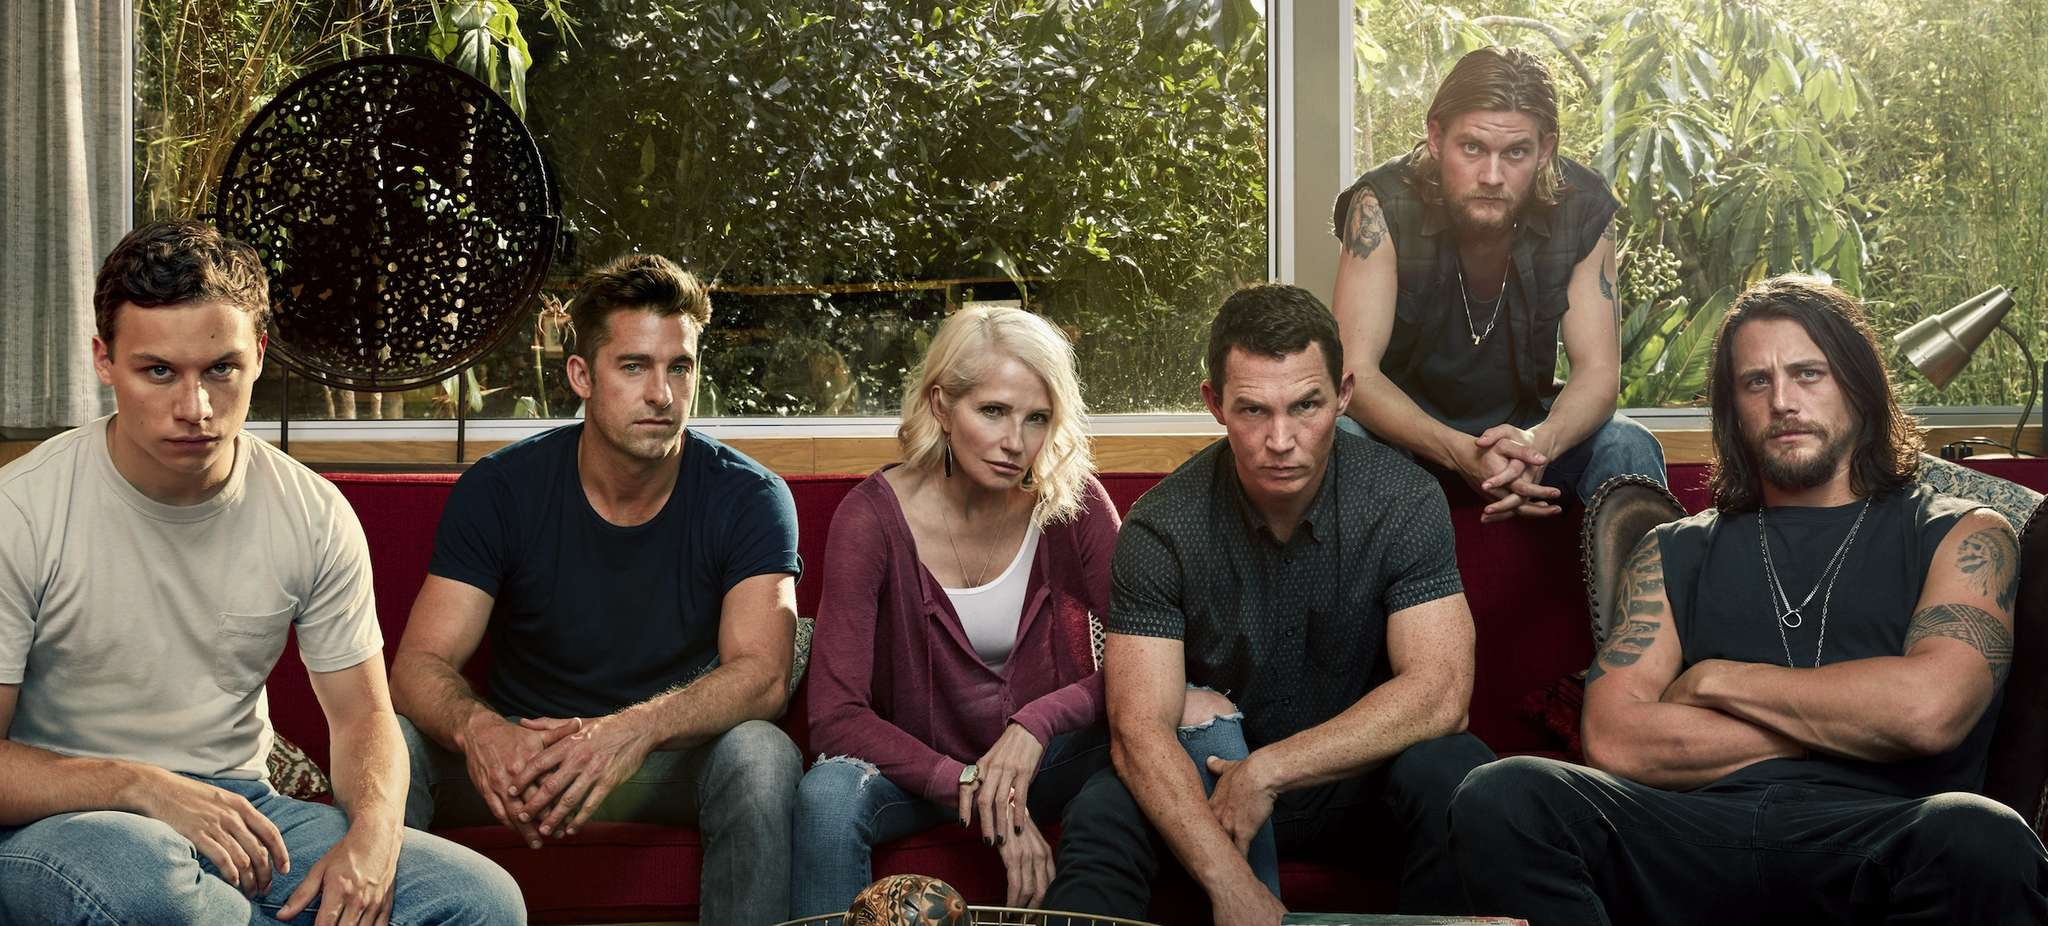 """The Cody crime family: Ellen Barkin plays the matriarch in """"Animal Kingdom,"""" with (from left) Finn Cole, Scott Speedman, Sean Hatosy, Jake Weary, and Ben Robson."""